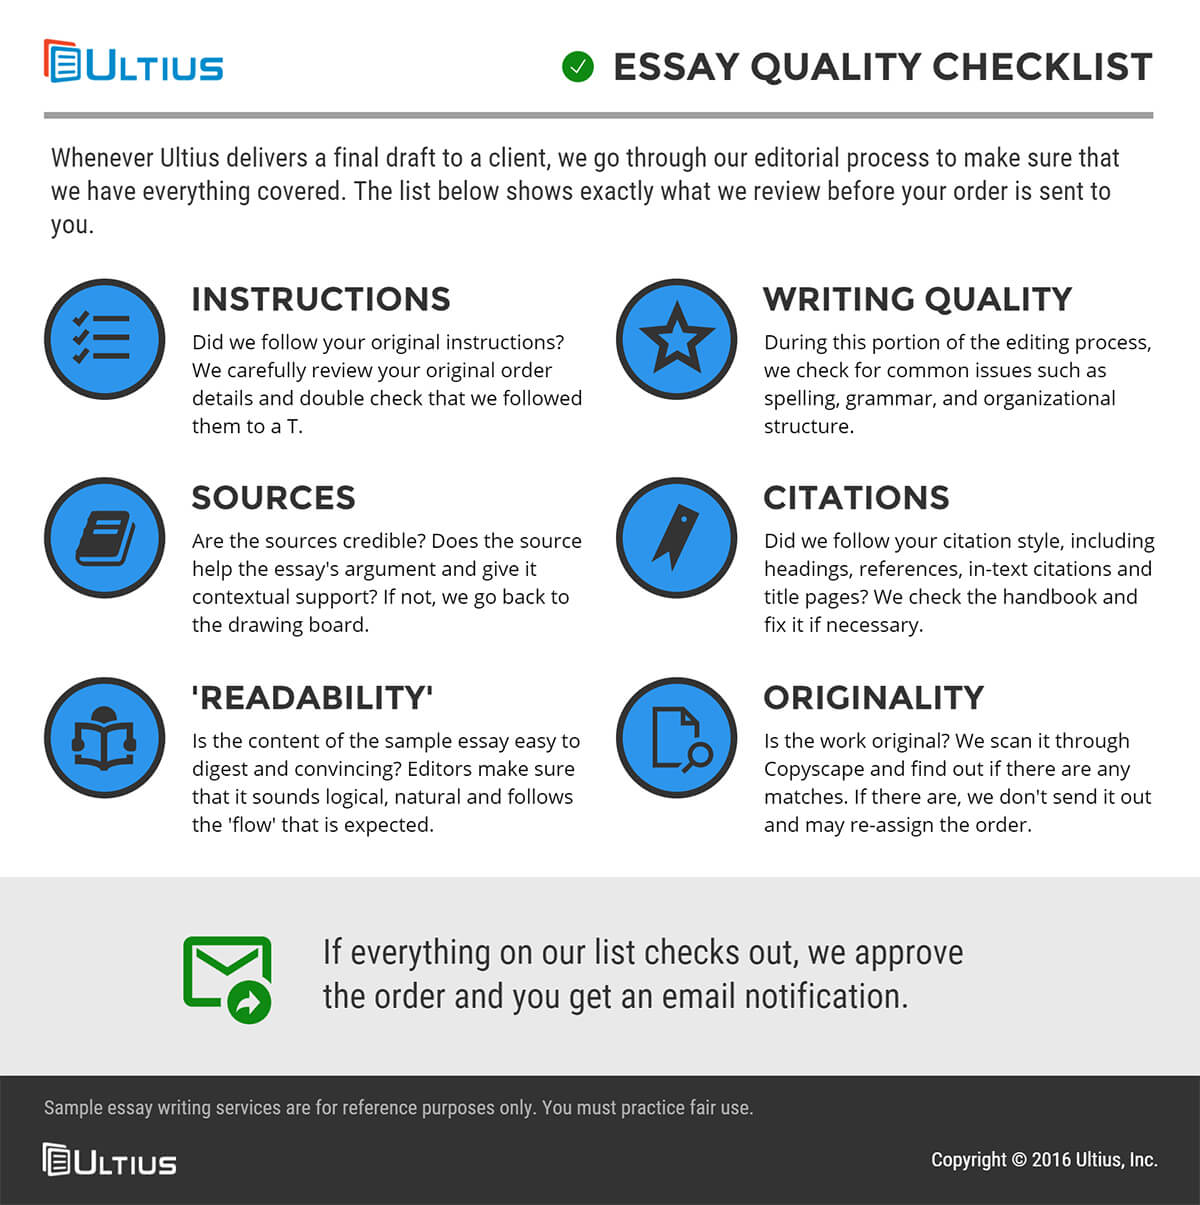 Quality essay help review units - paper tape writer (homework order)